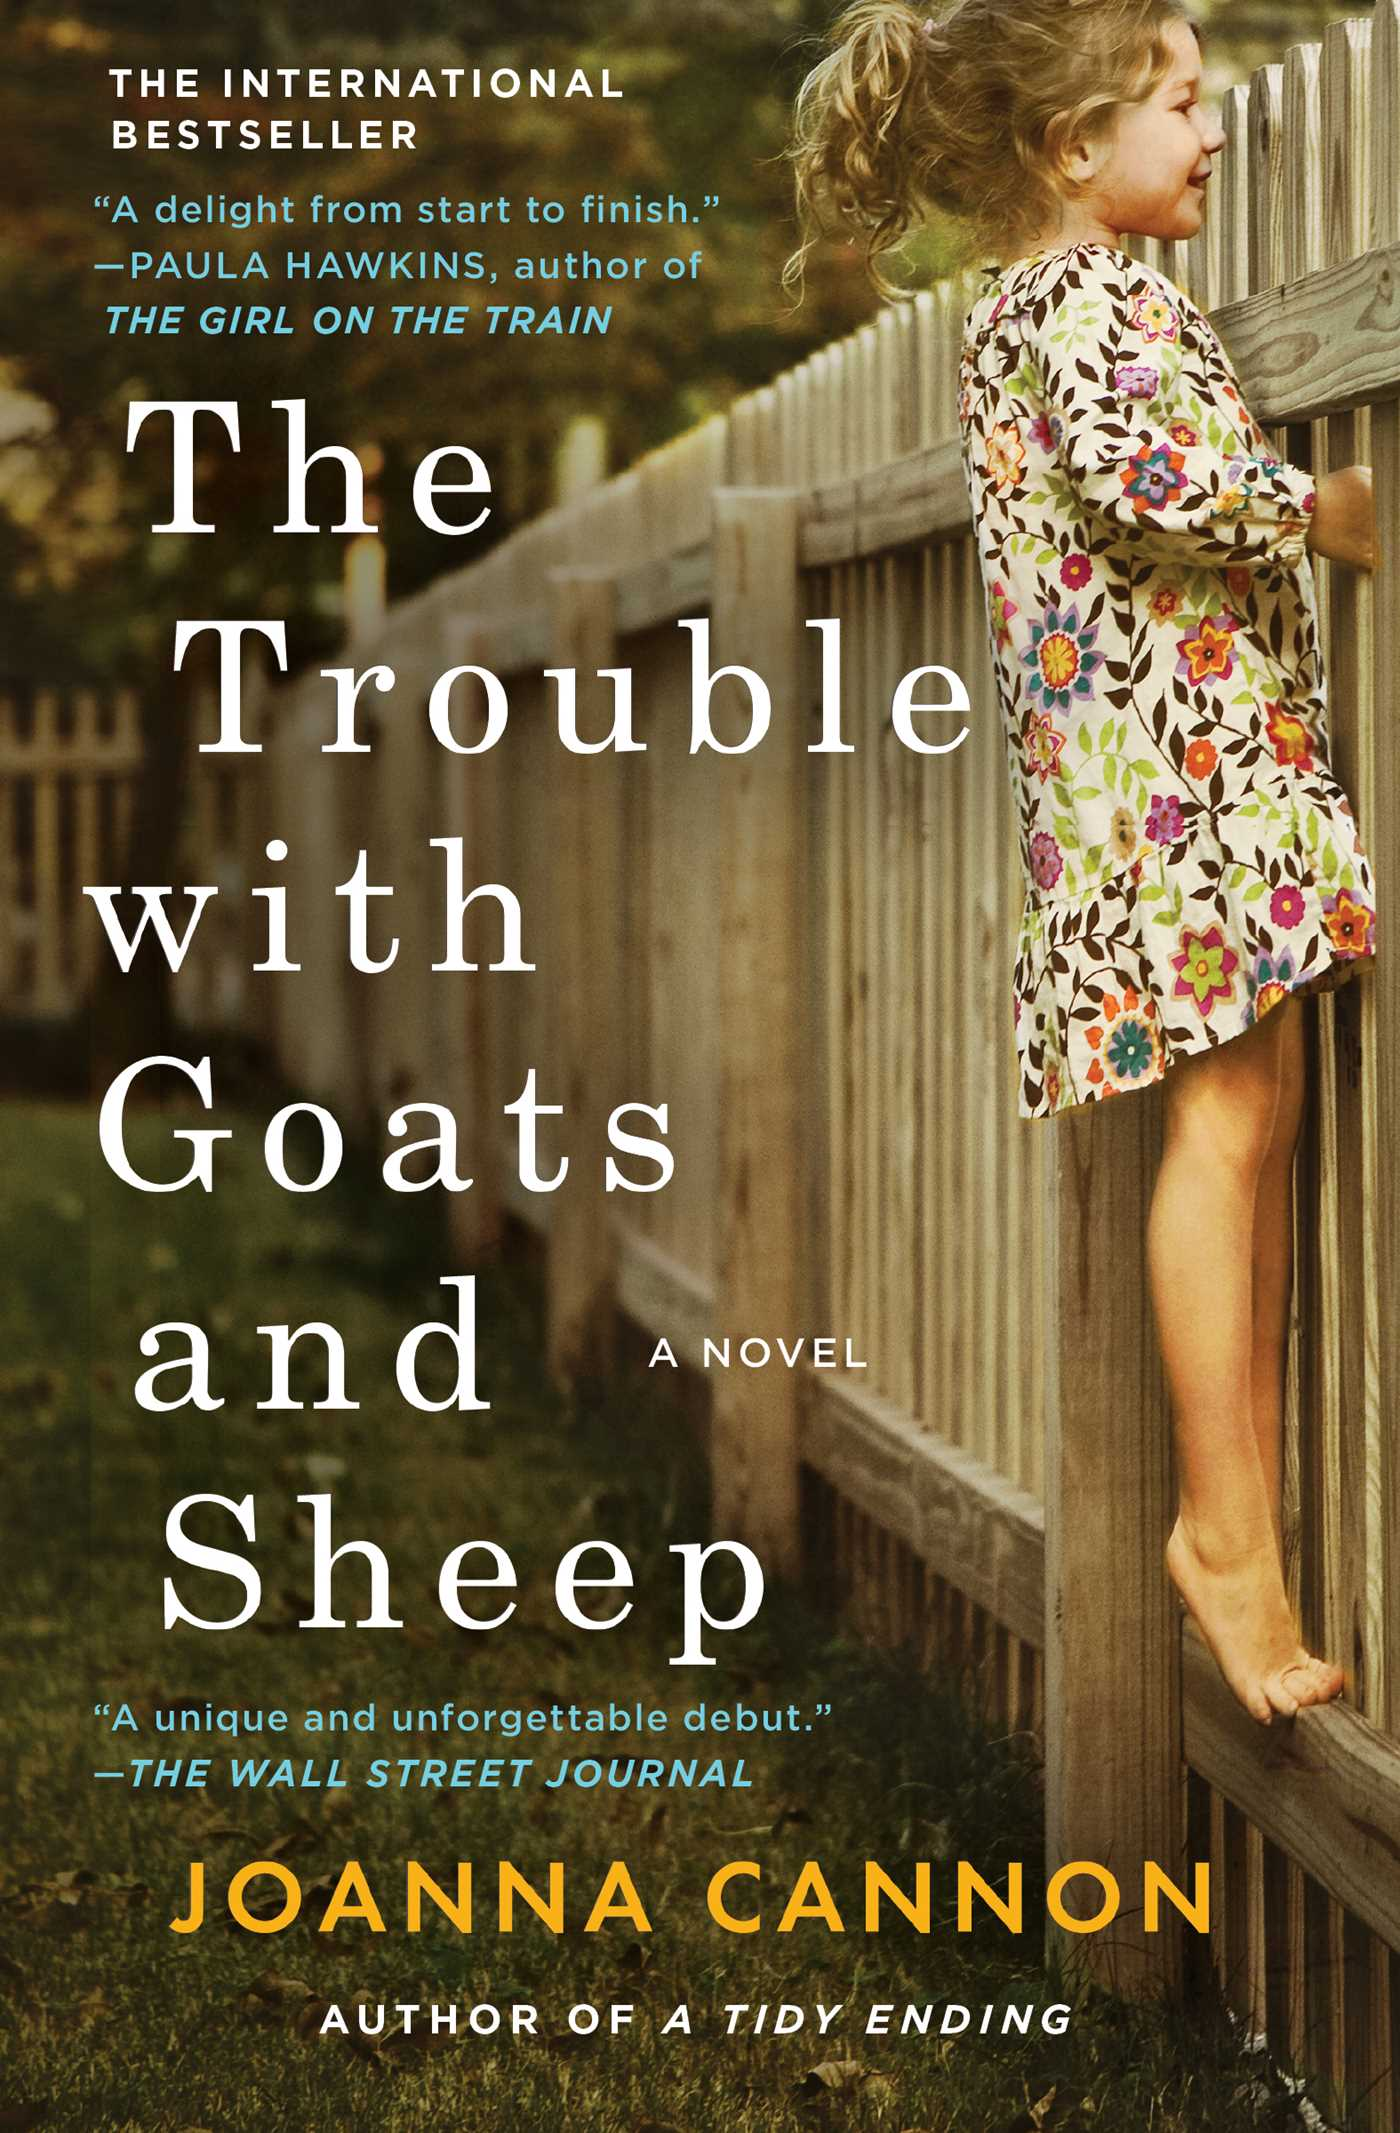 The trouble with goats and sheep 9781501121913 hr